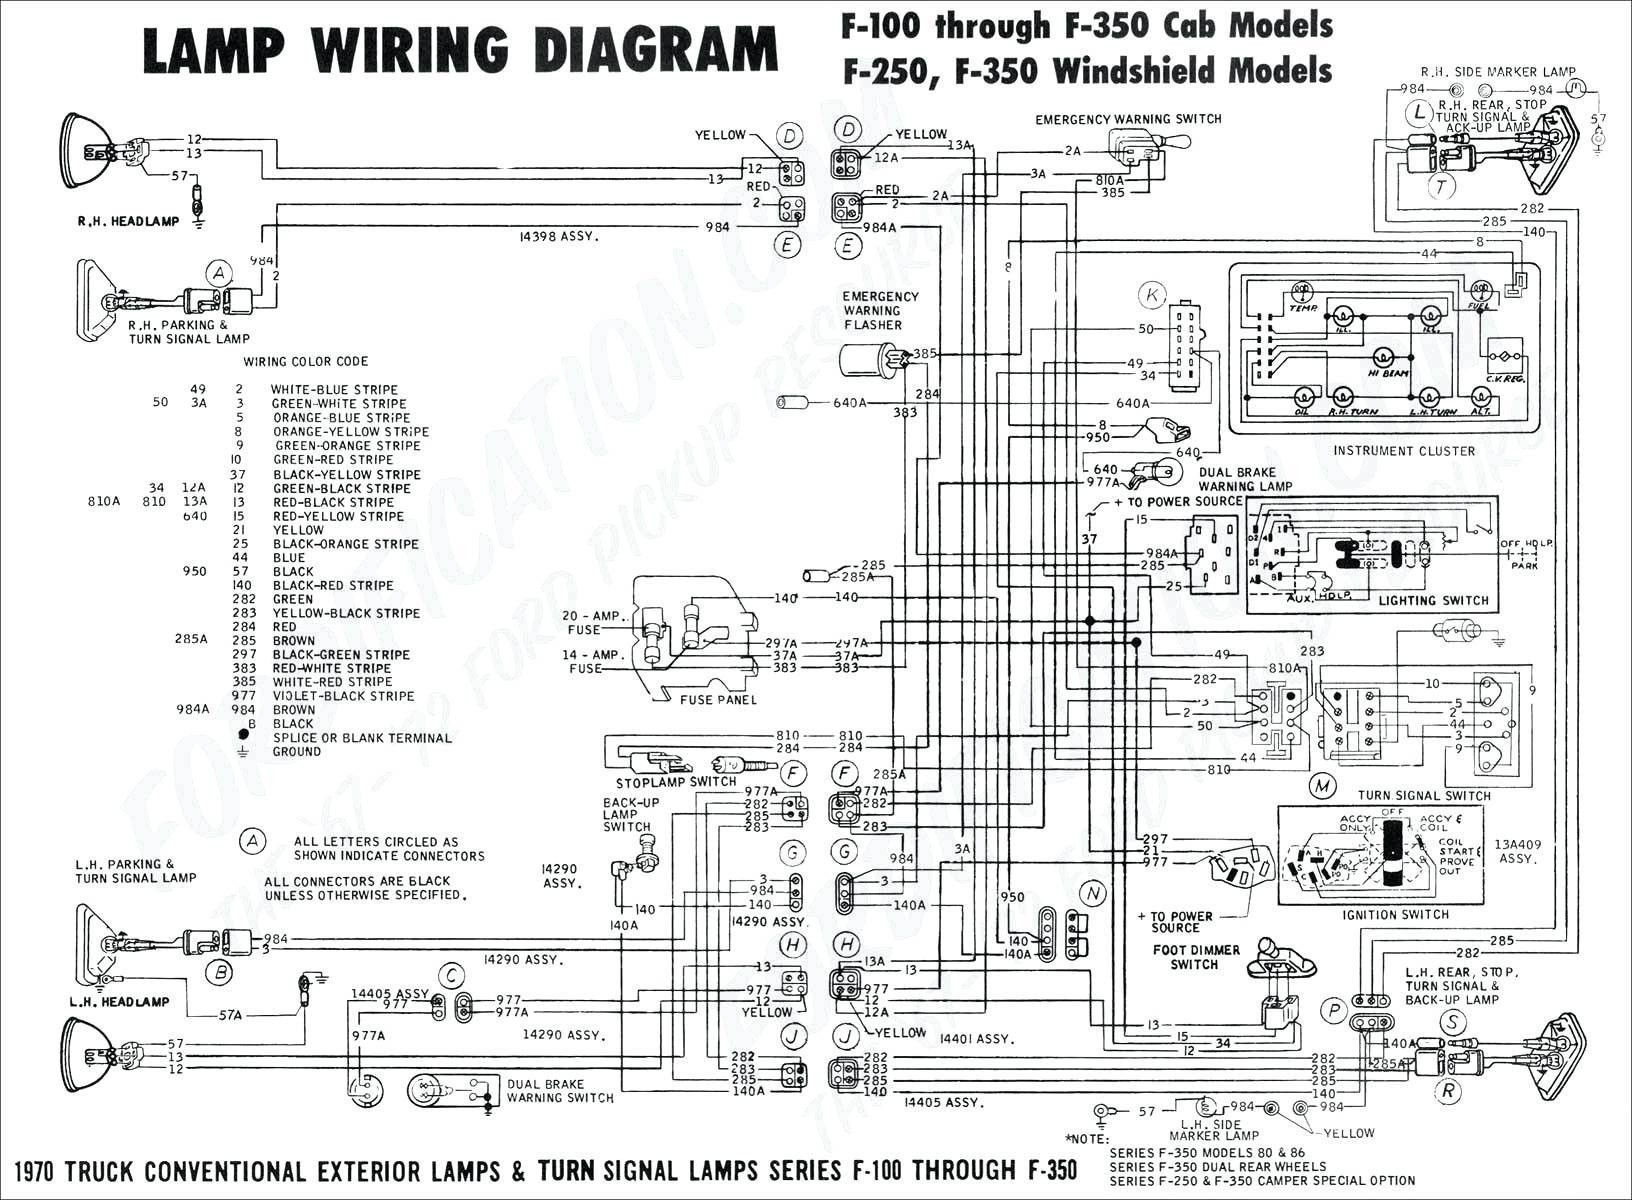 450 Peugeot Expert Central Locking Wiring Diagram | Wiring ... on pico cable, pico with no equipment, pico electrical products, pico connector, pico distributors, pico eugene oregon, pico transformer,